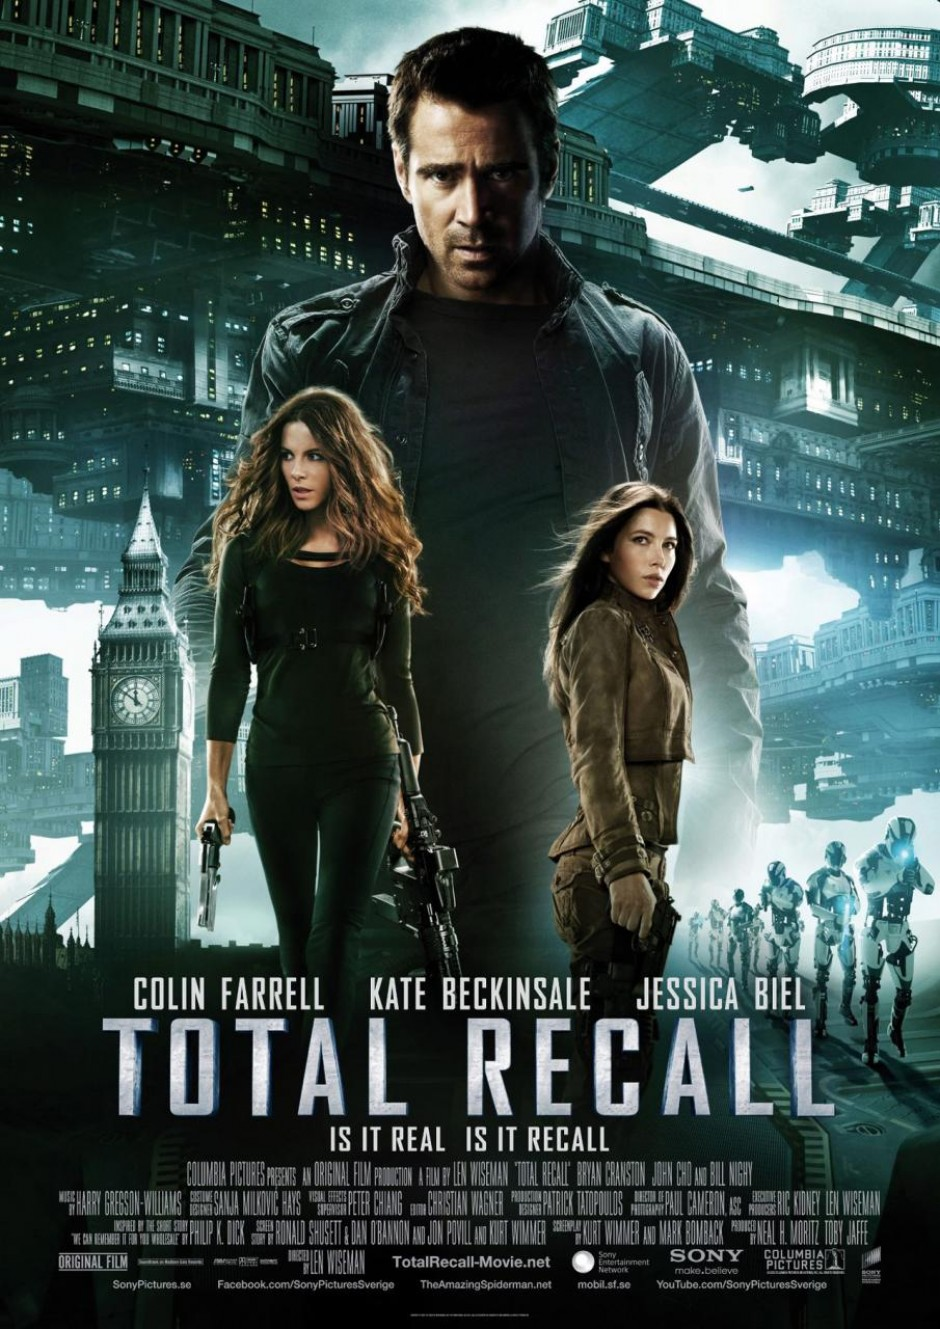 Total recall 2012 movie poster1 e1342103315897